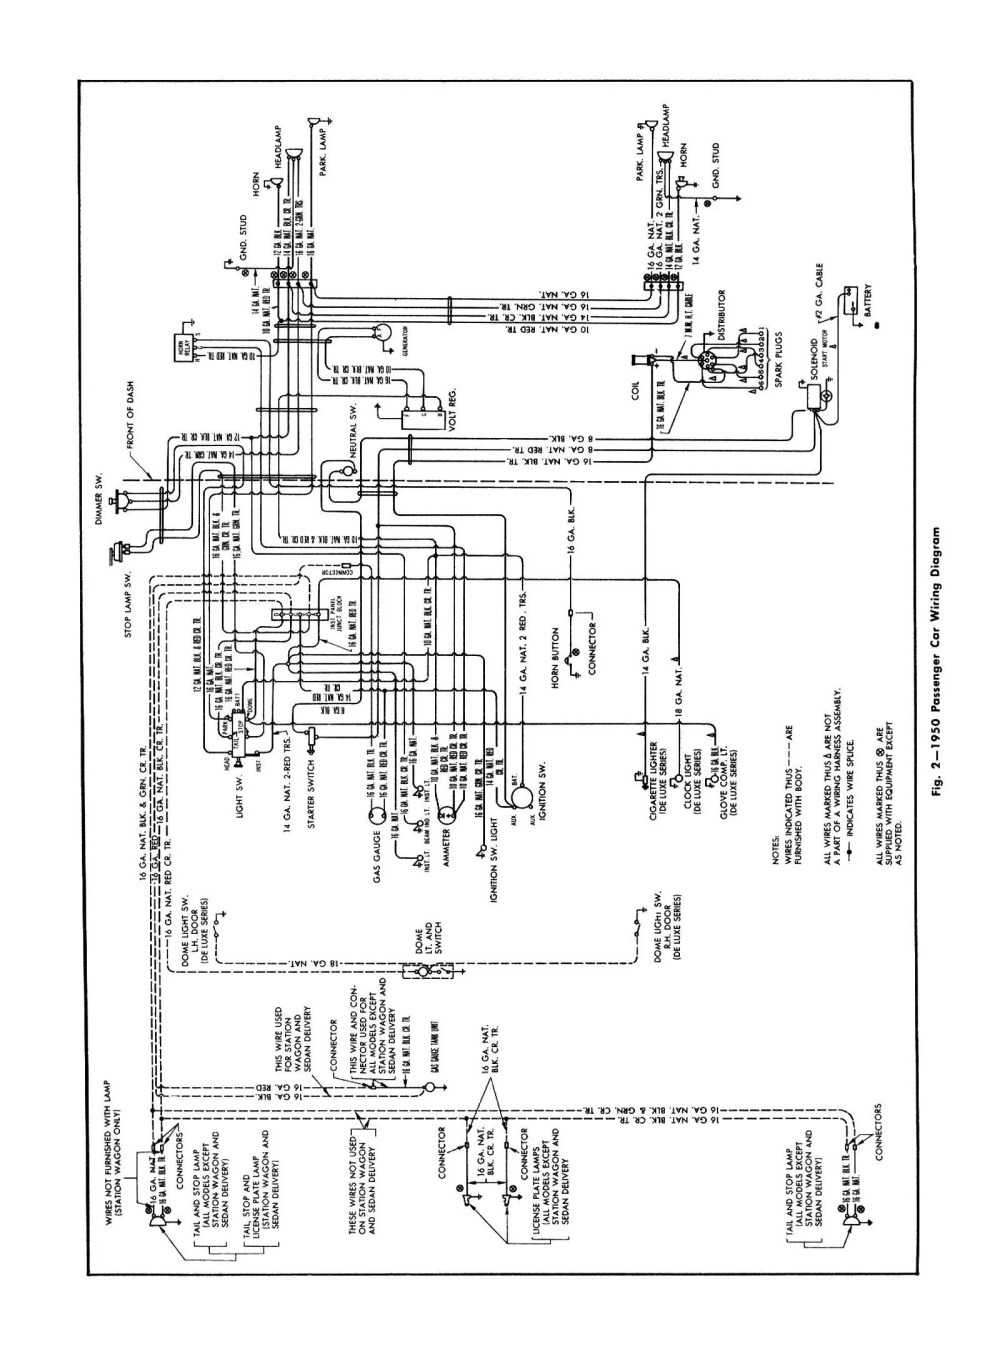 medium resolution of 1950 chrysler engine diagram use wiring diagram 1949 chrysler wiring diagram